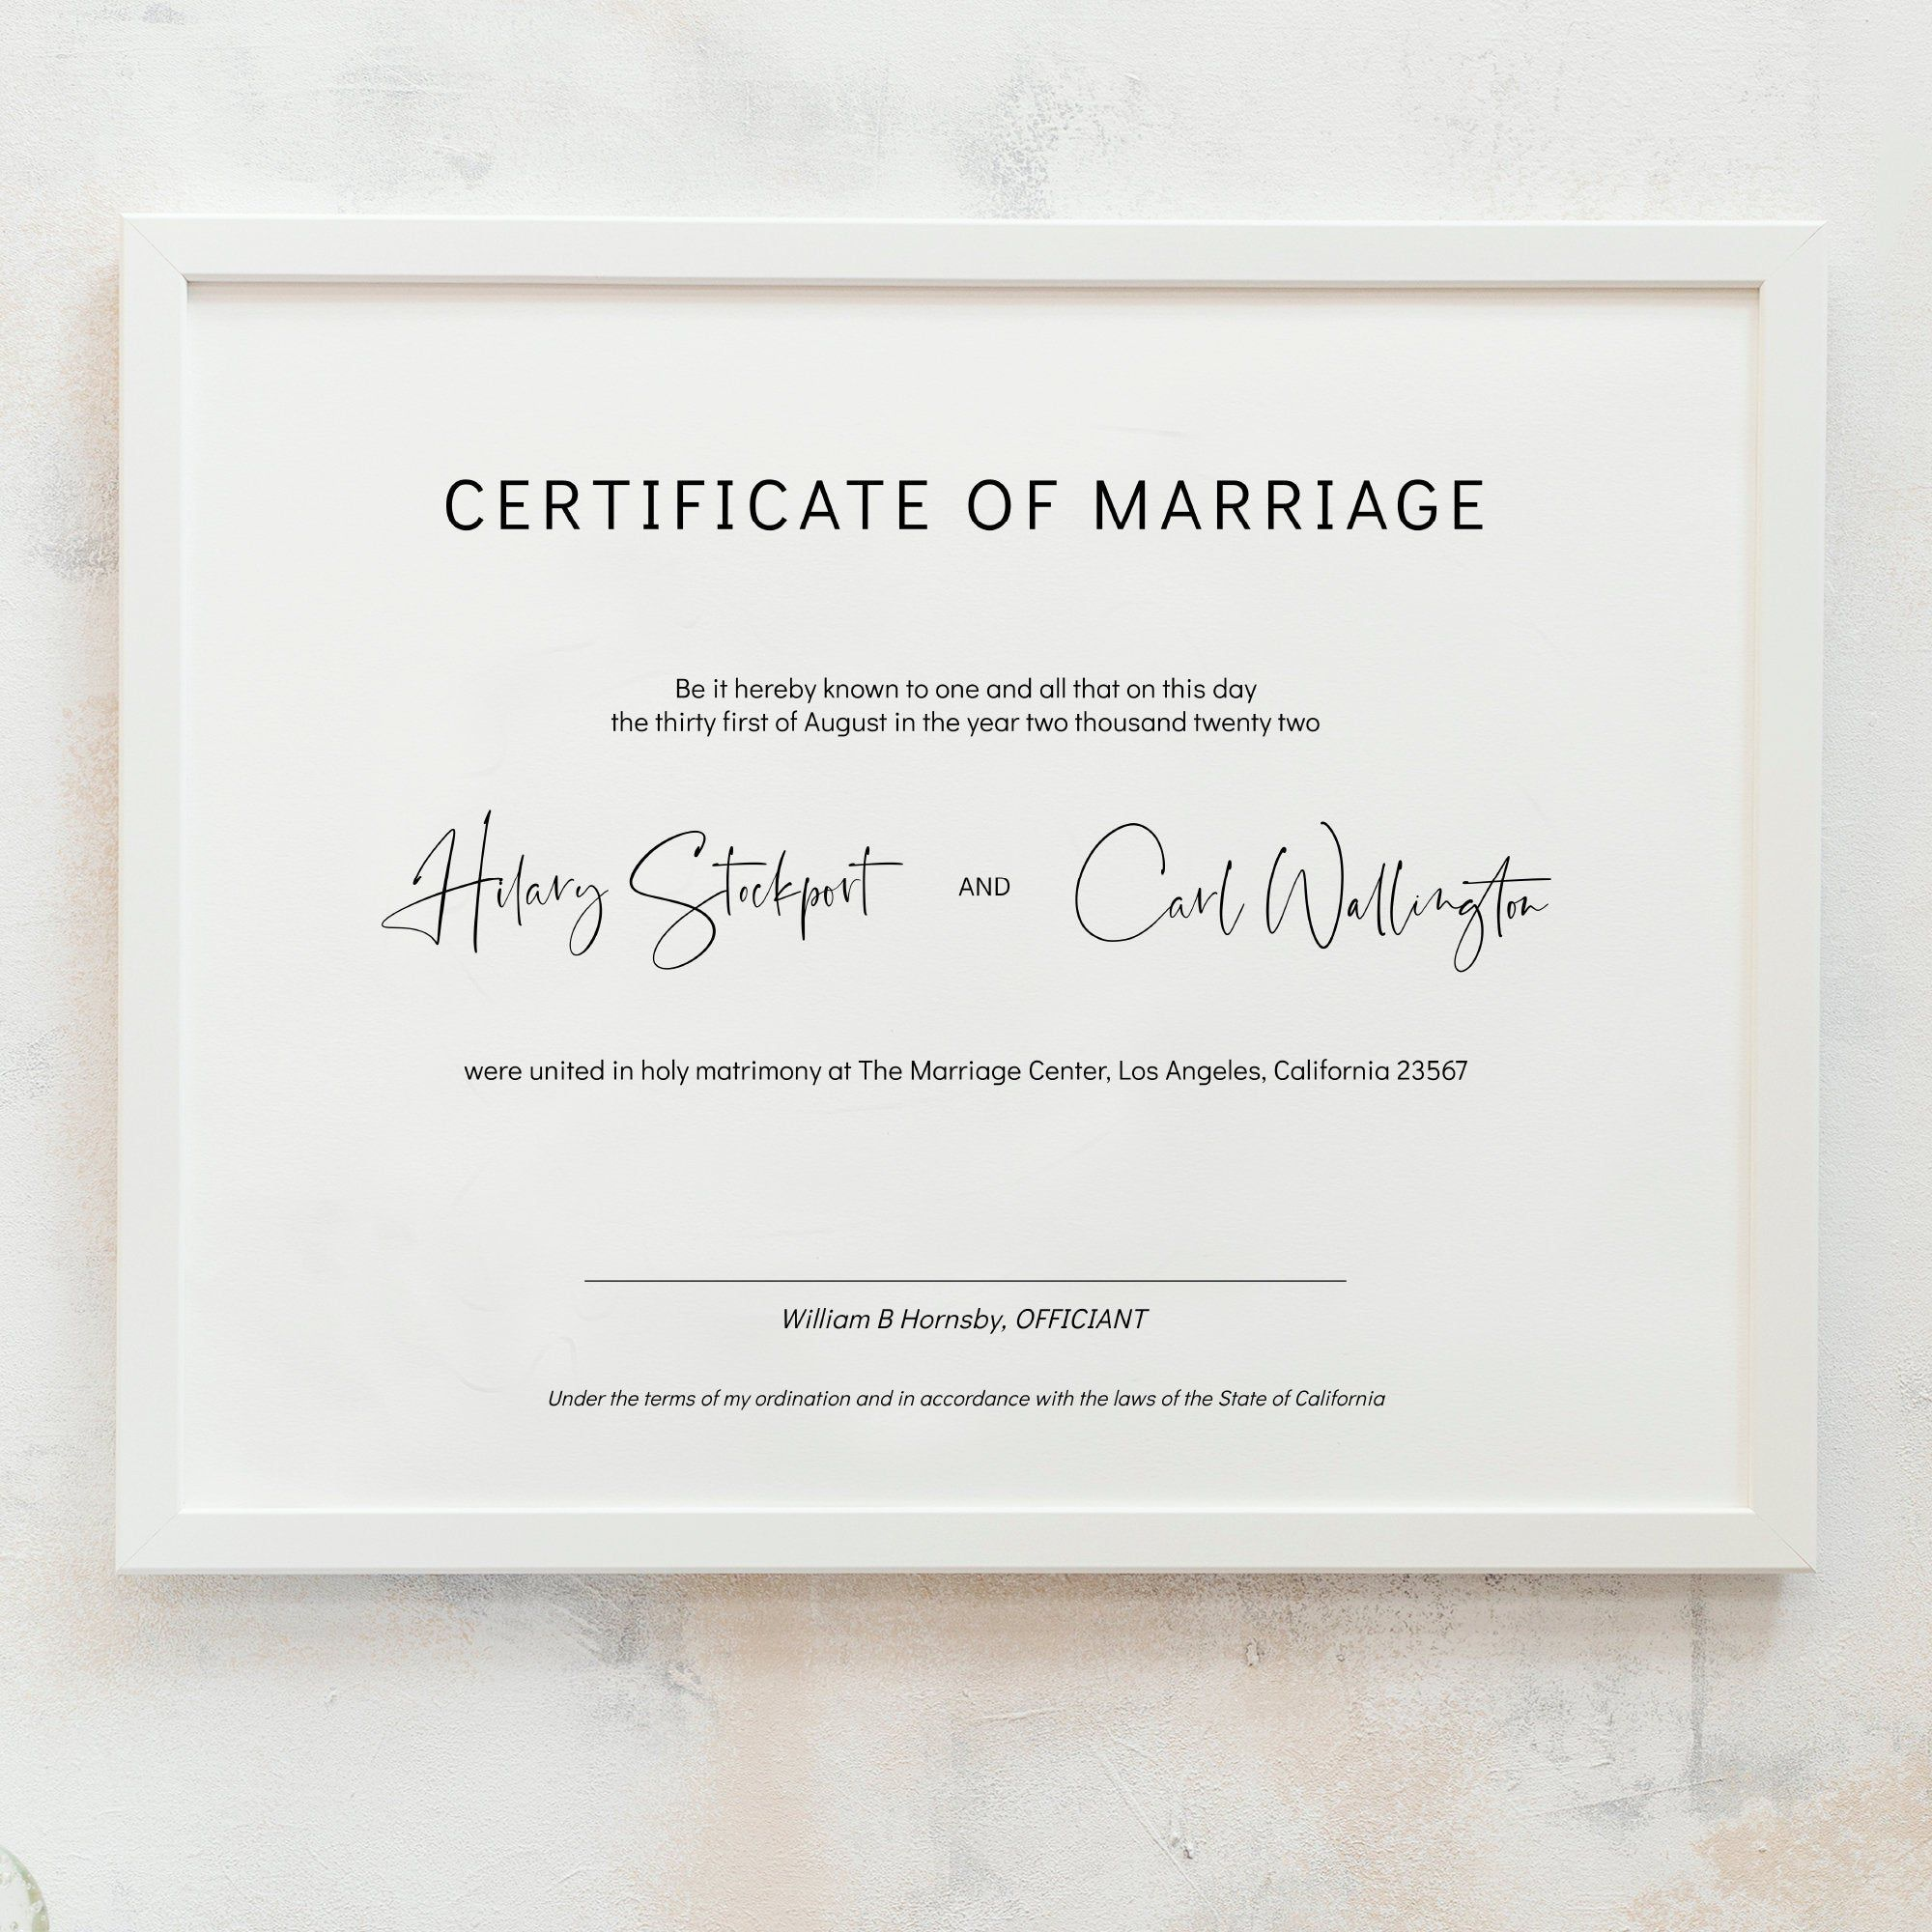 010 Unique Free Marriage Certificate Template Idea  Renewal Translation From Spanish To English Wedding DownloadFull